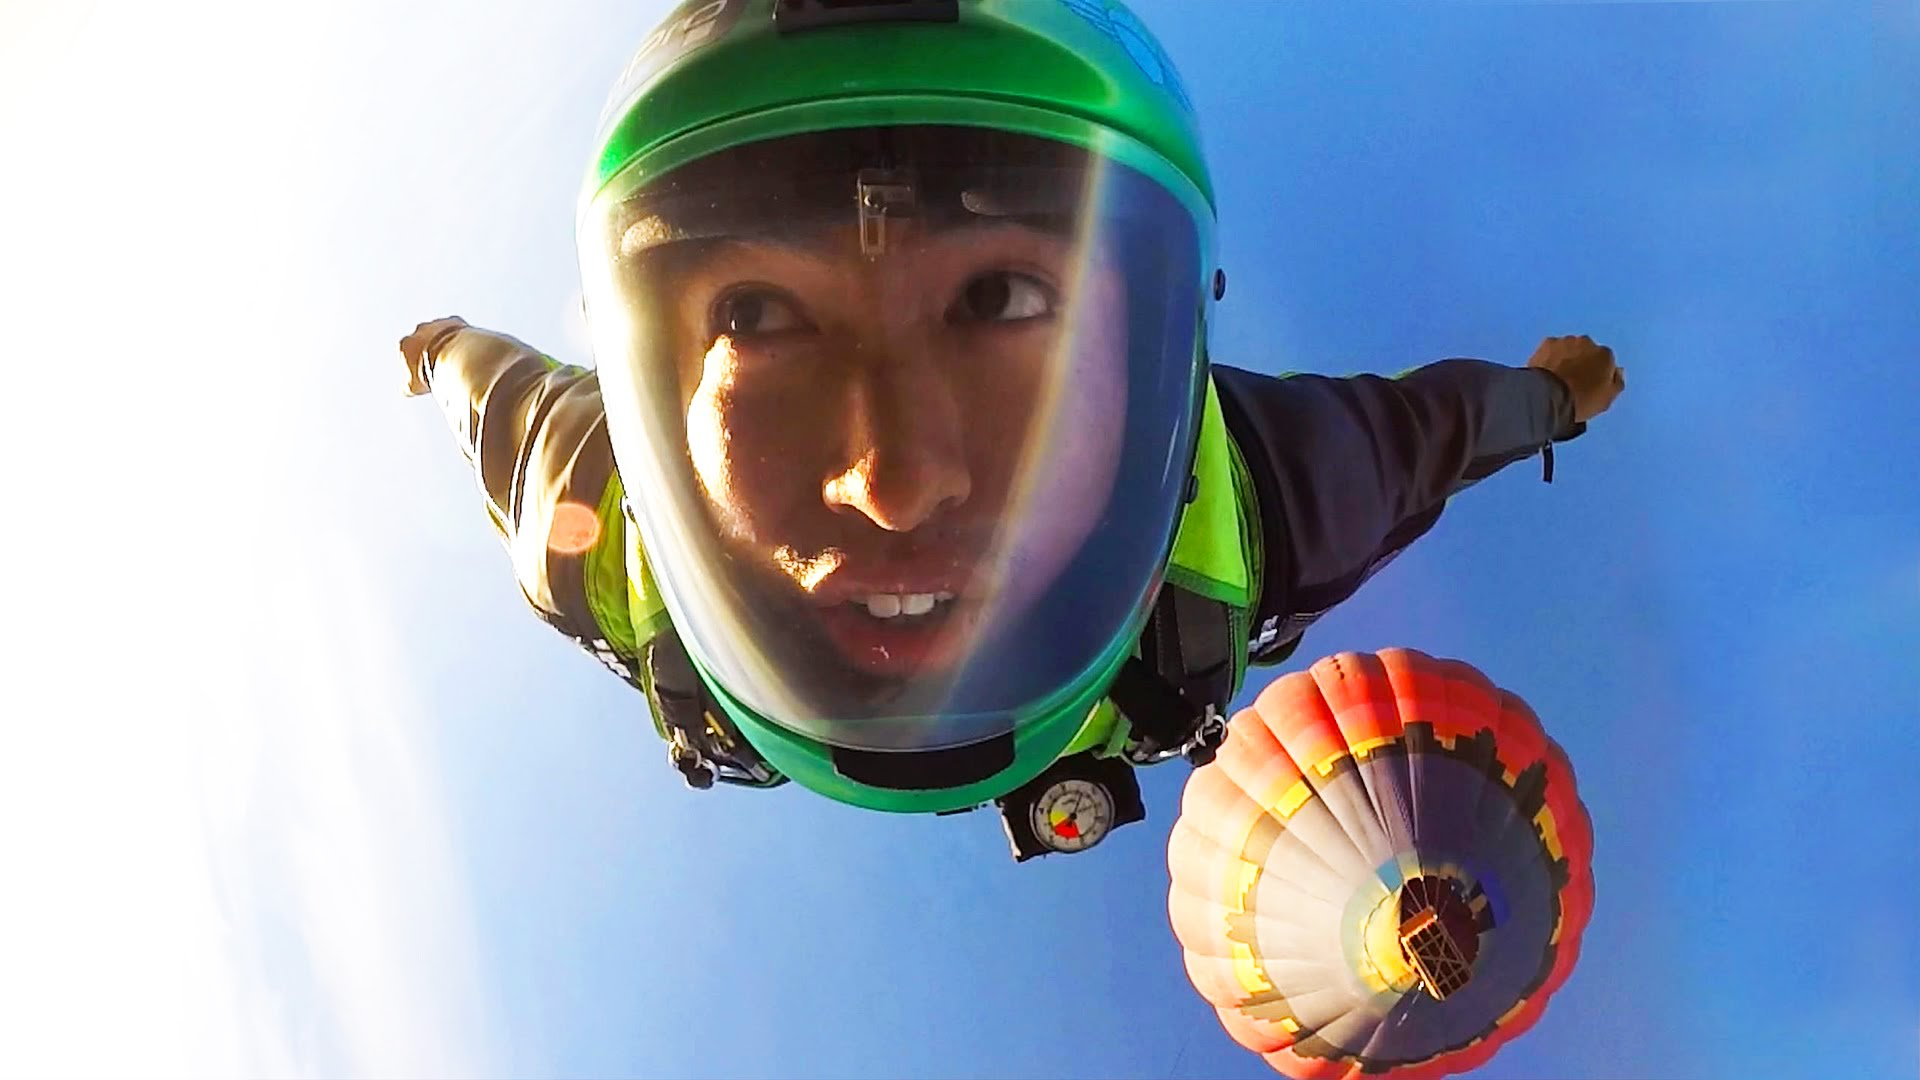 Wingsuit Sky dive with GoPro 4 from Air Balloon